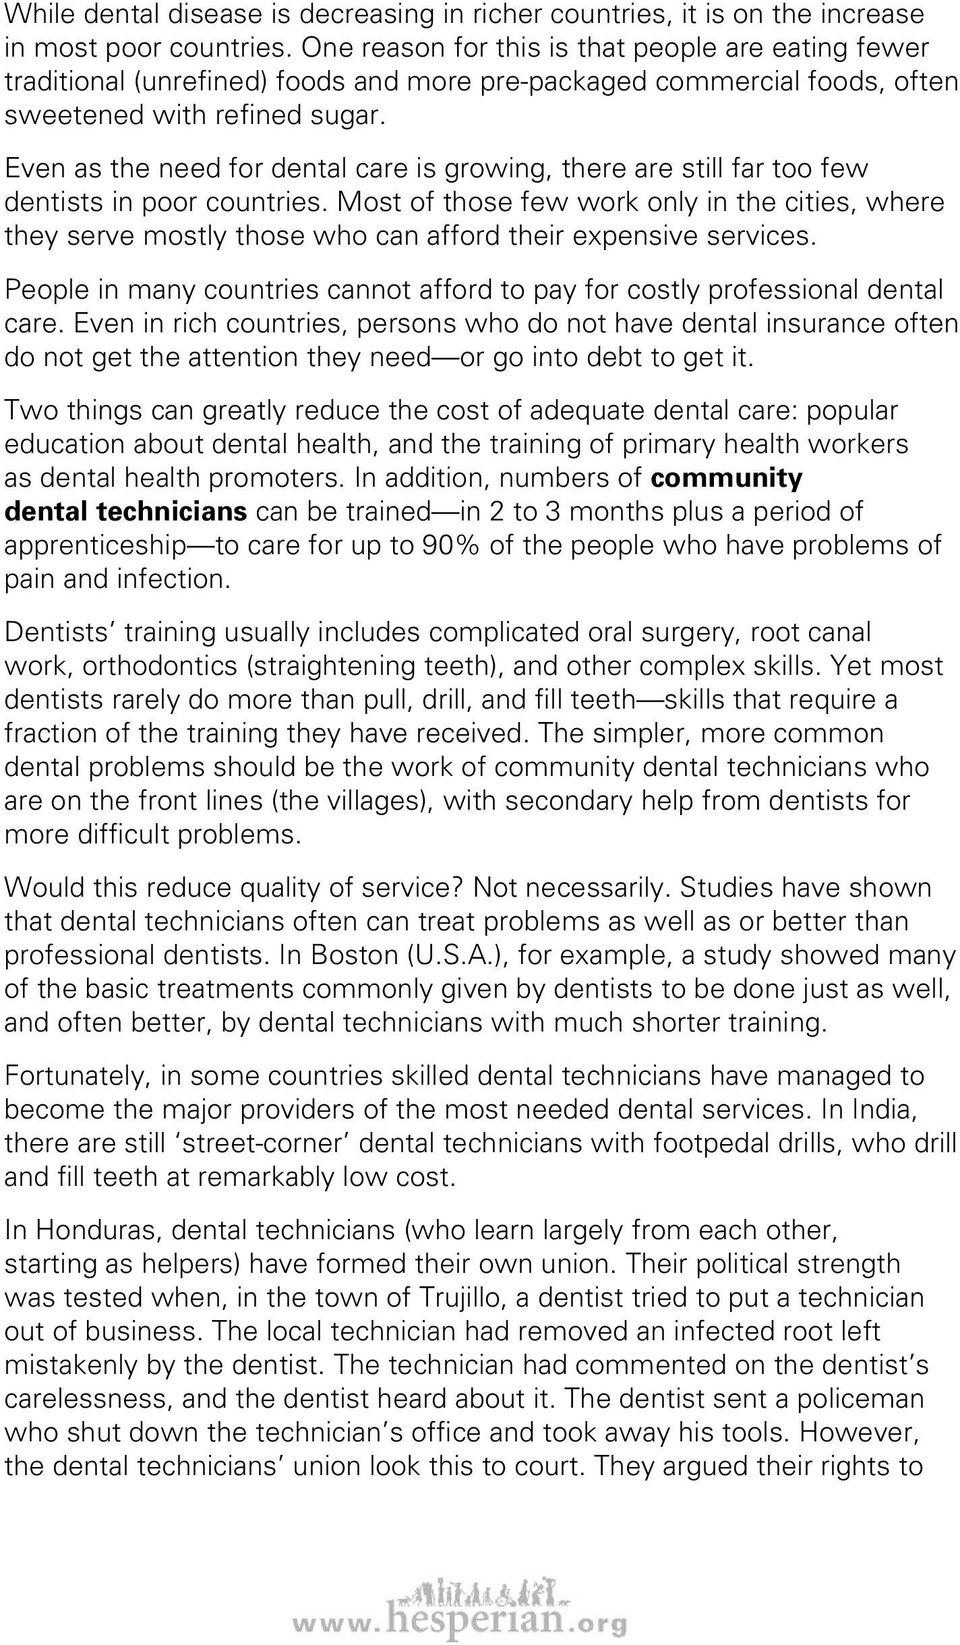 Even as the need for dental care is growing, there are still far too few dentists in poor countries.